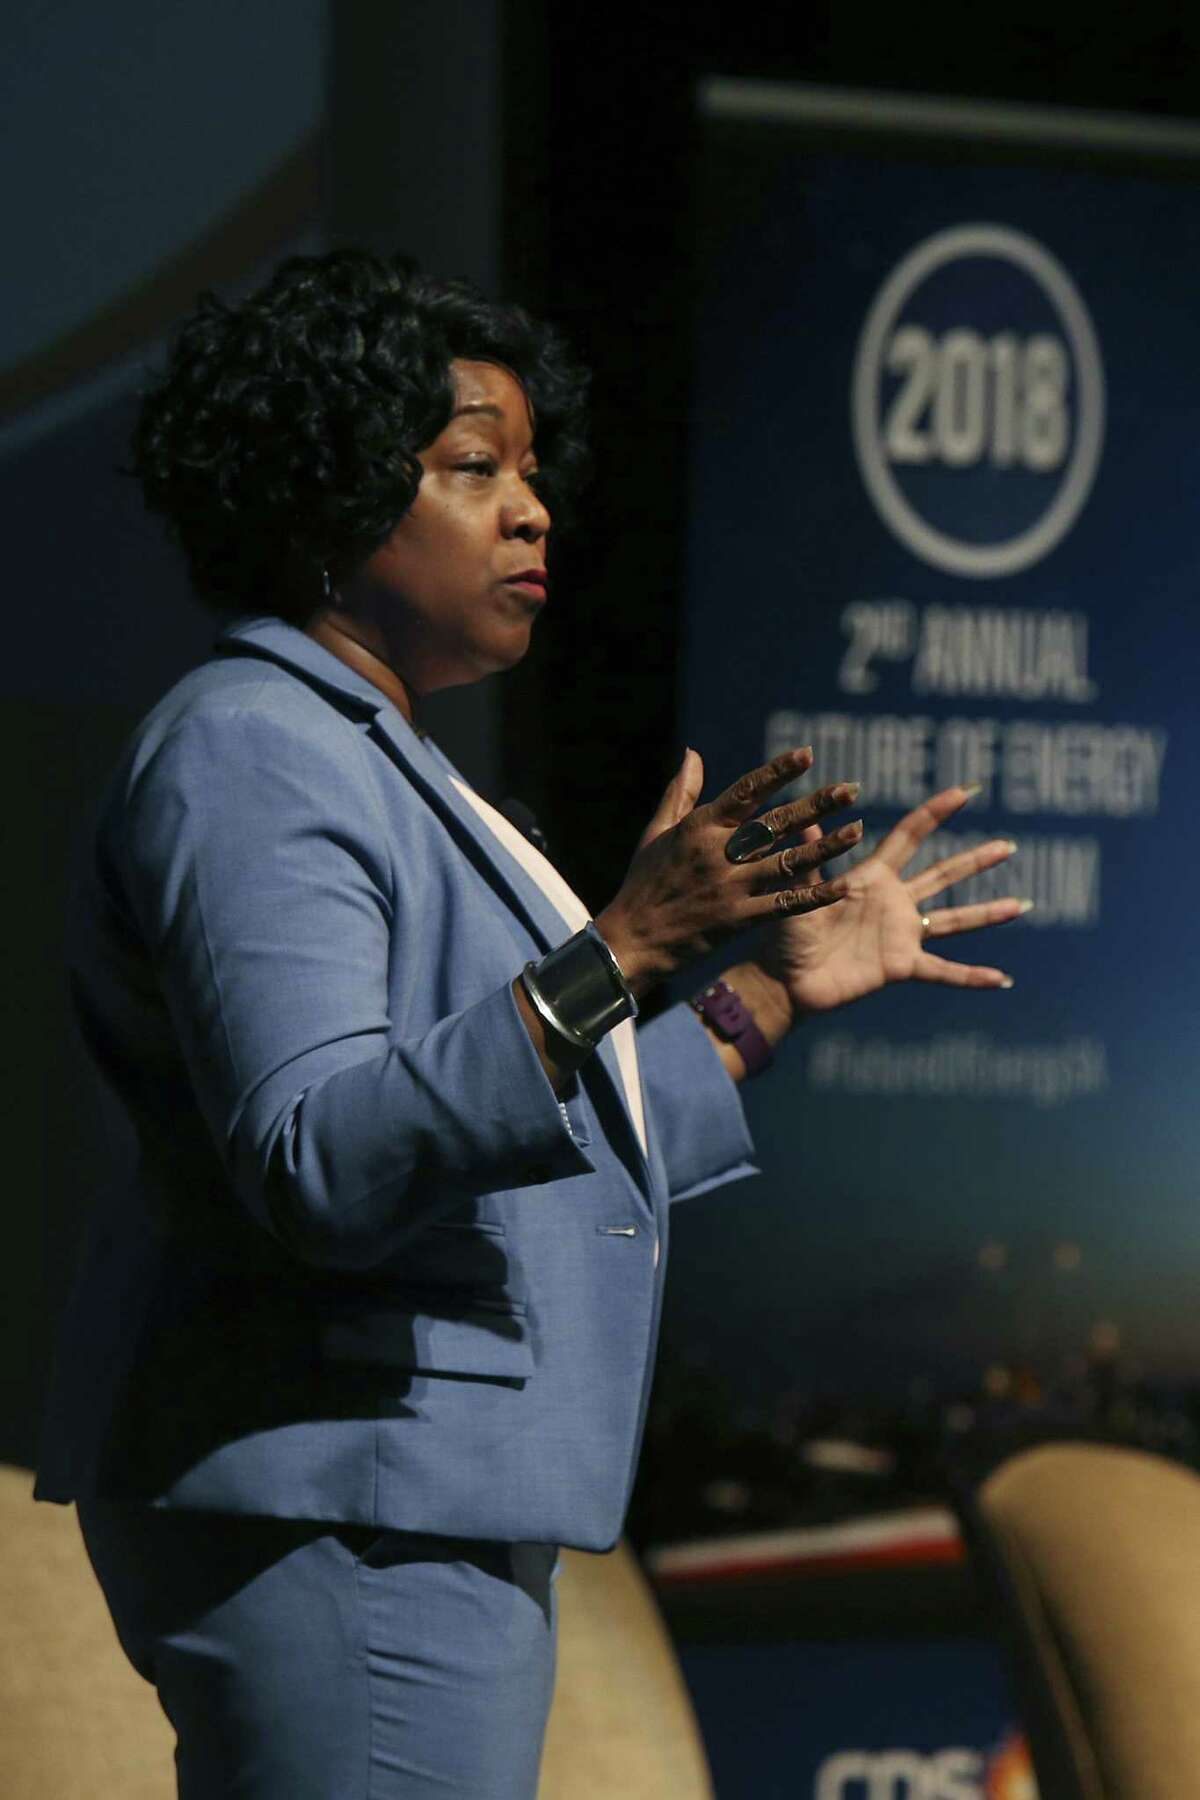 CPS Energy President and CEO Paula Gold-Williams speaks during the second annual Future of Energy Symposium at the Texas A&M - San Antonio main campus, Tuesday, Feb. 27, 2018.